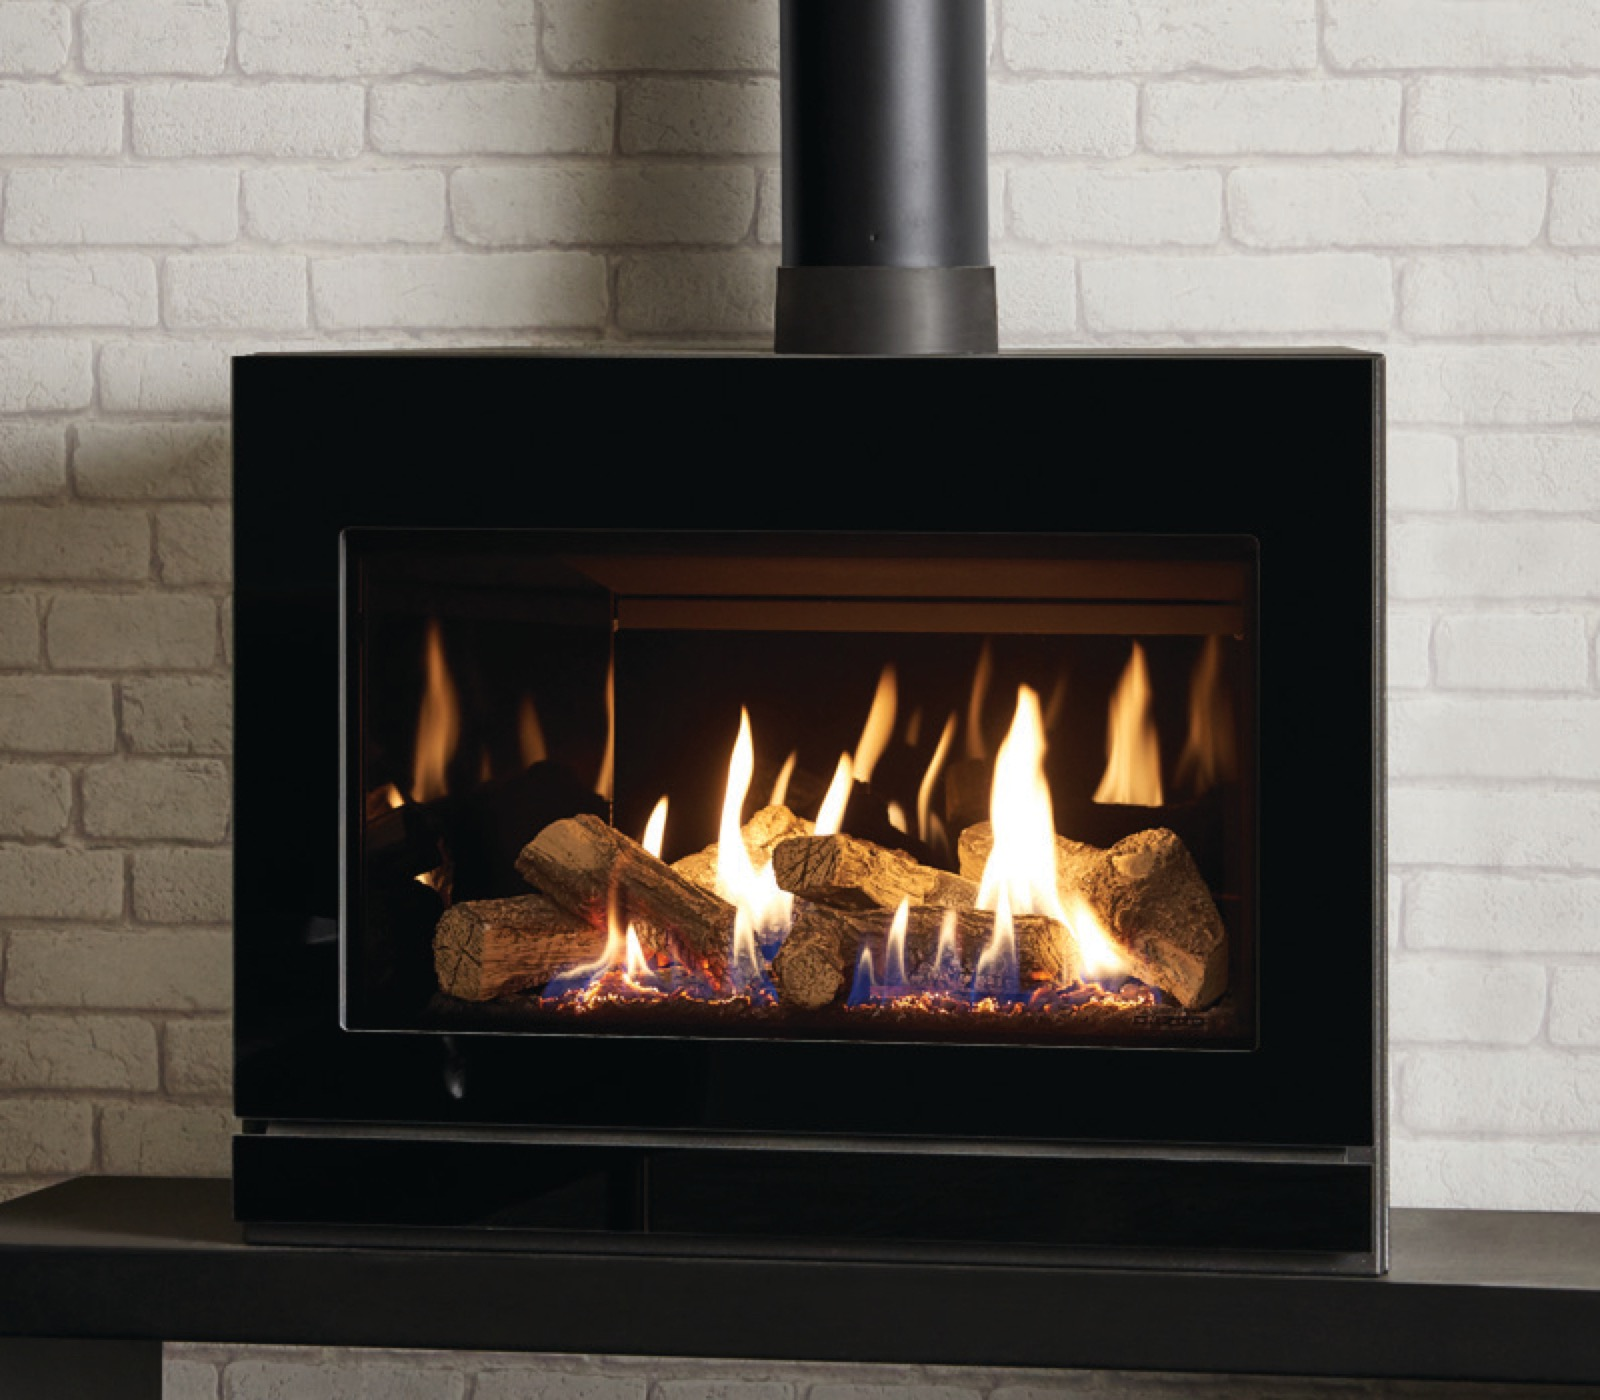 freestanding fireplace north gas stove true watch youtube